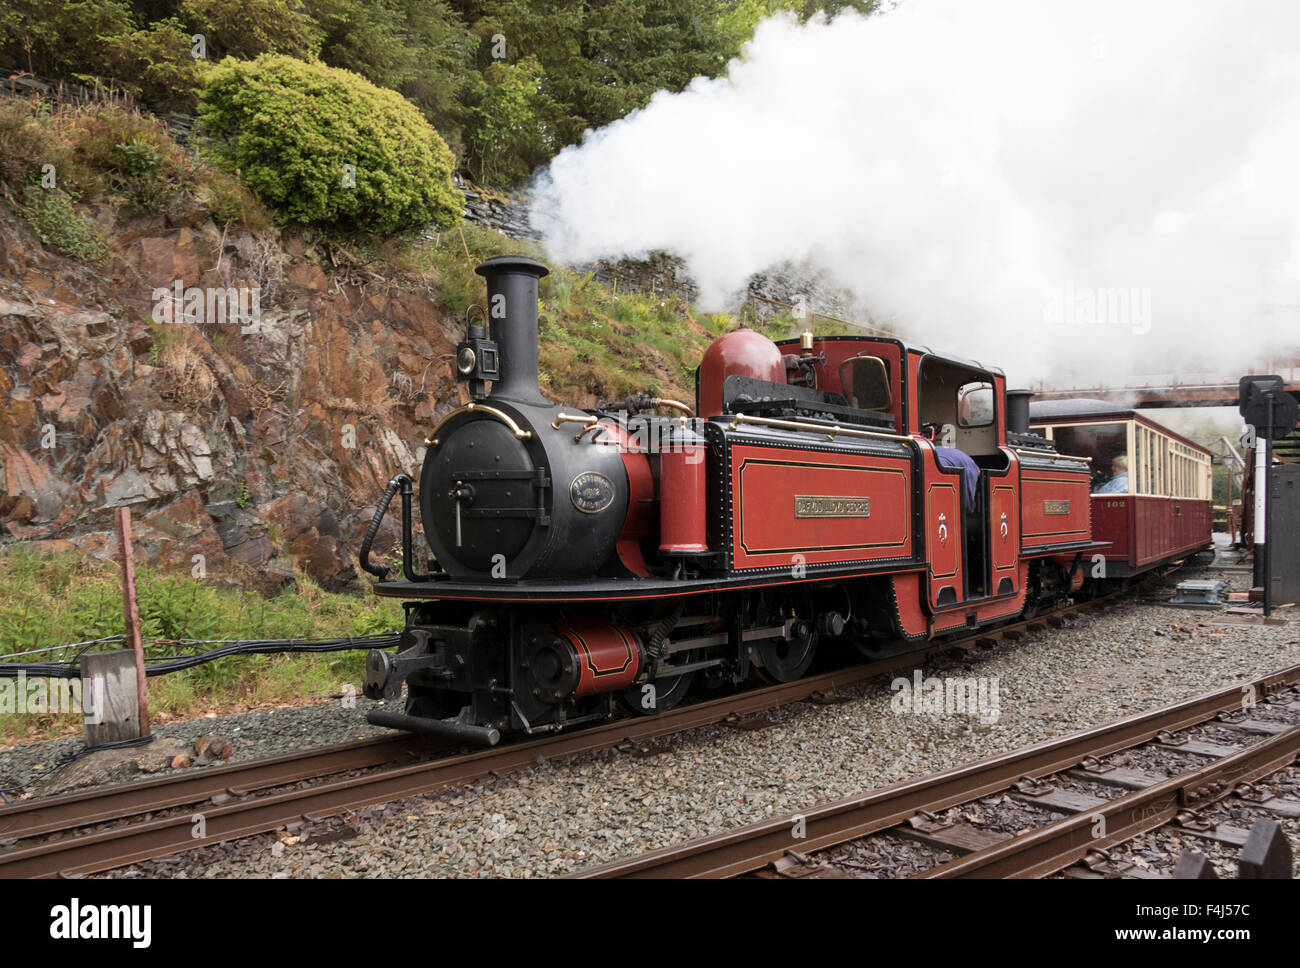 Steam engine Dafydd Lloyd George at Tan-y-Bwlch Station on the Ffestiniog Railway, Wales, United Kingdom, Europe - Stock Image